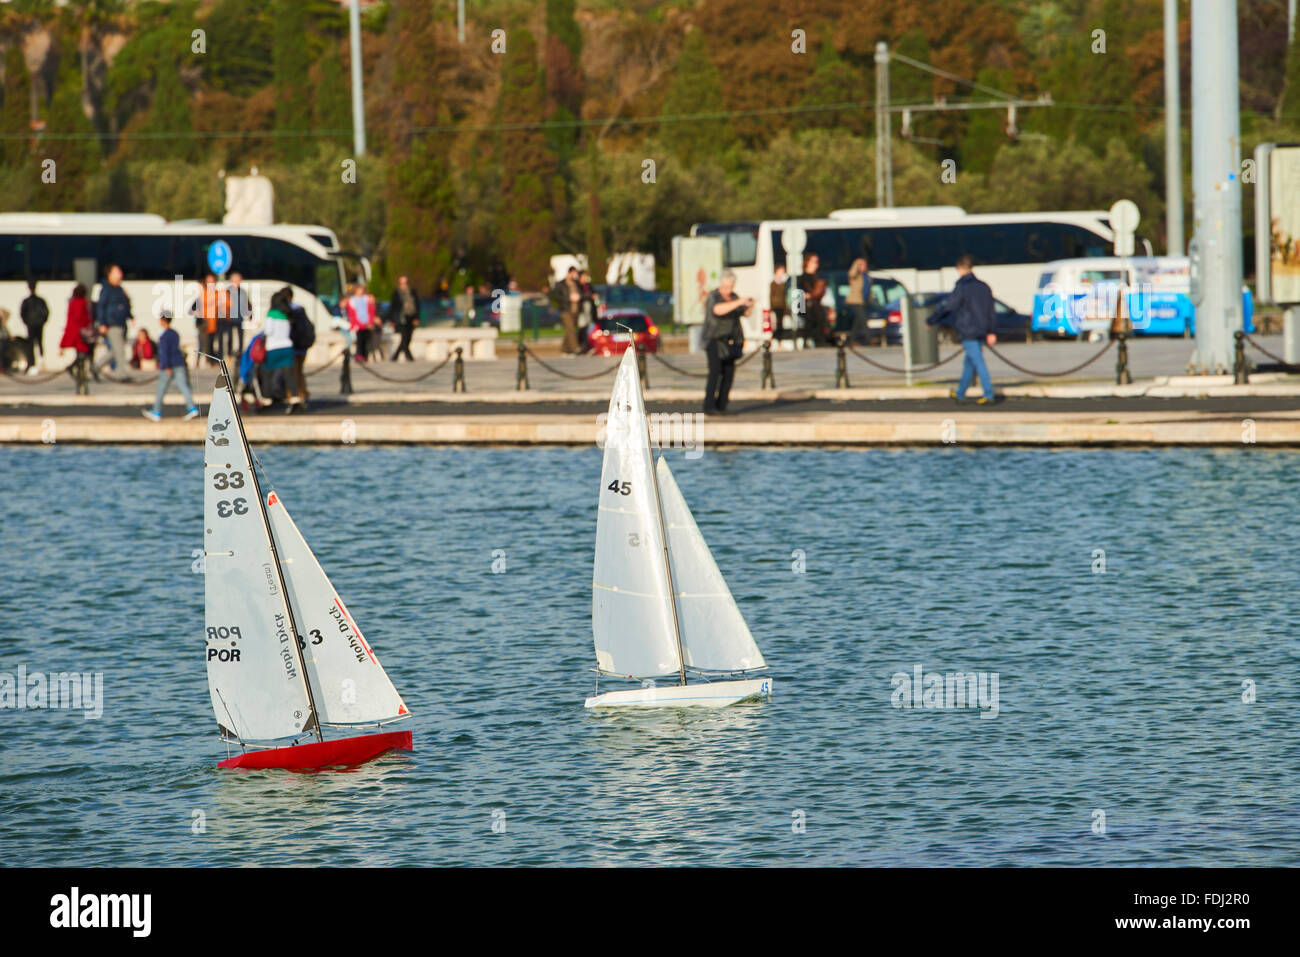 RC Sailboats in Belem, Lisbon, Portugal Stock Photo